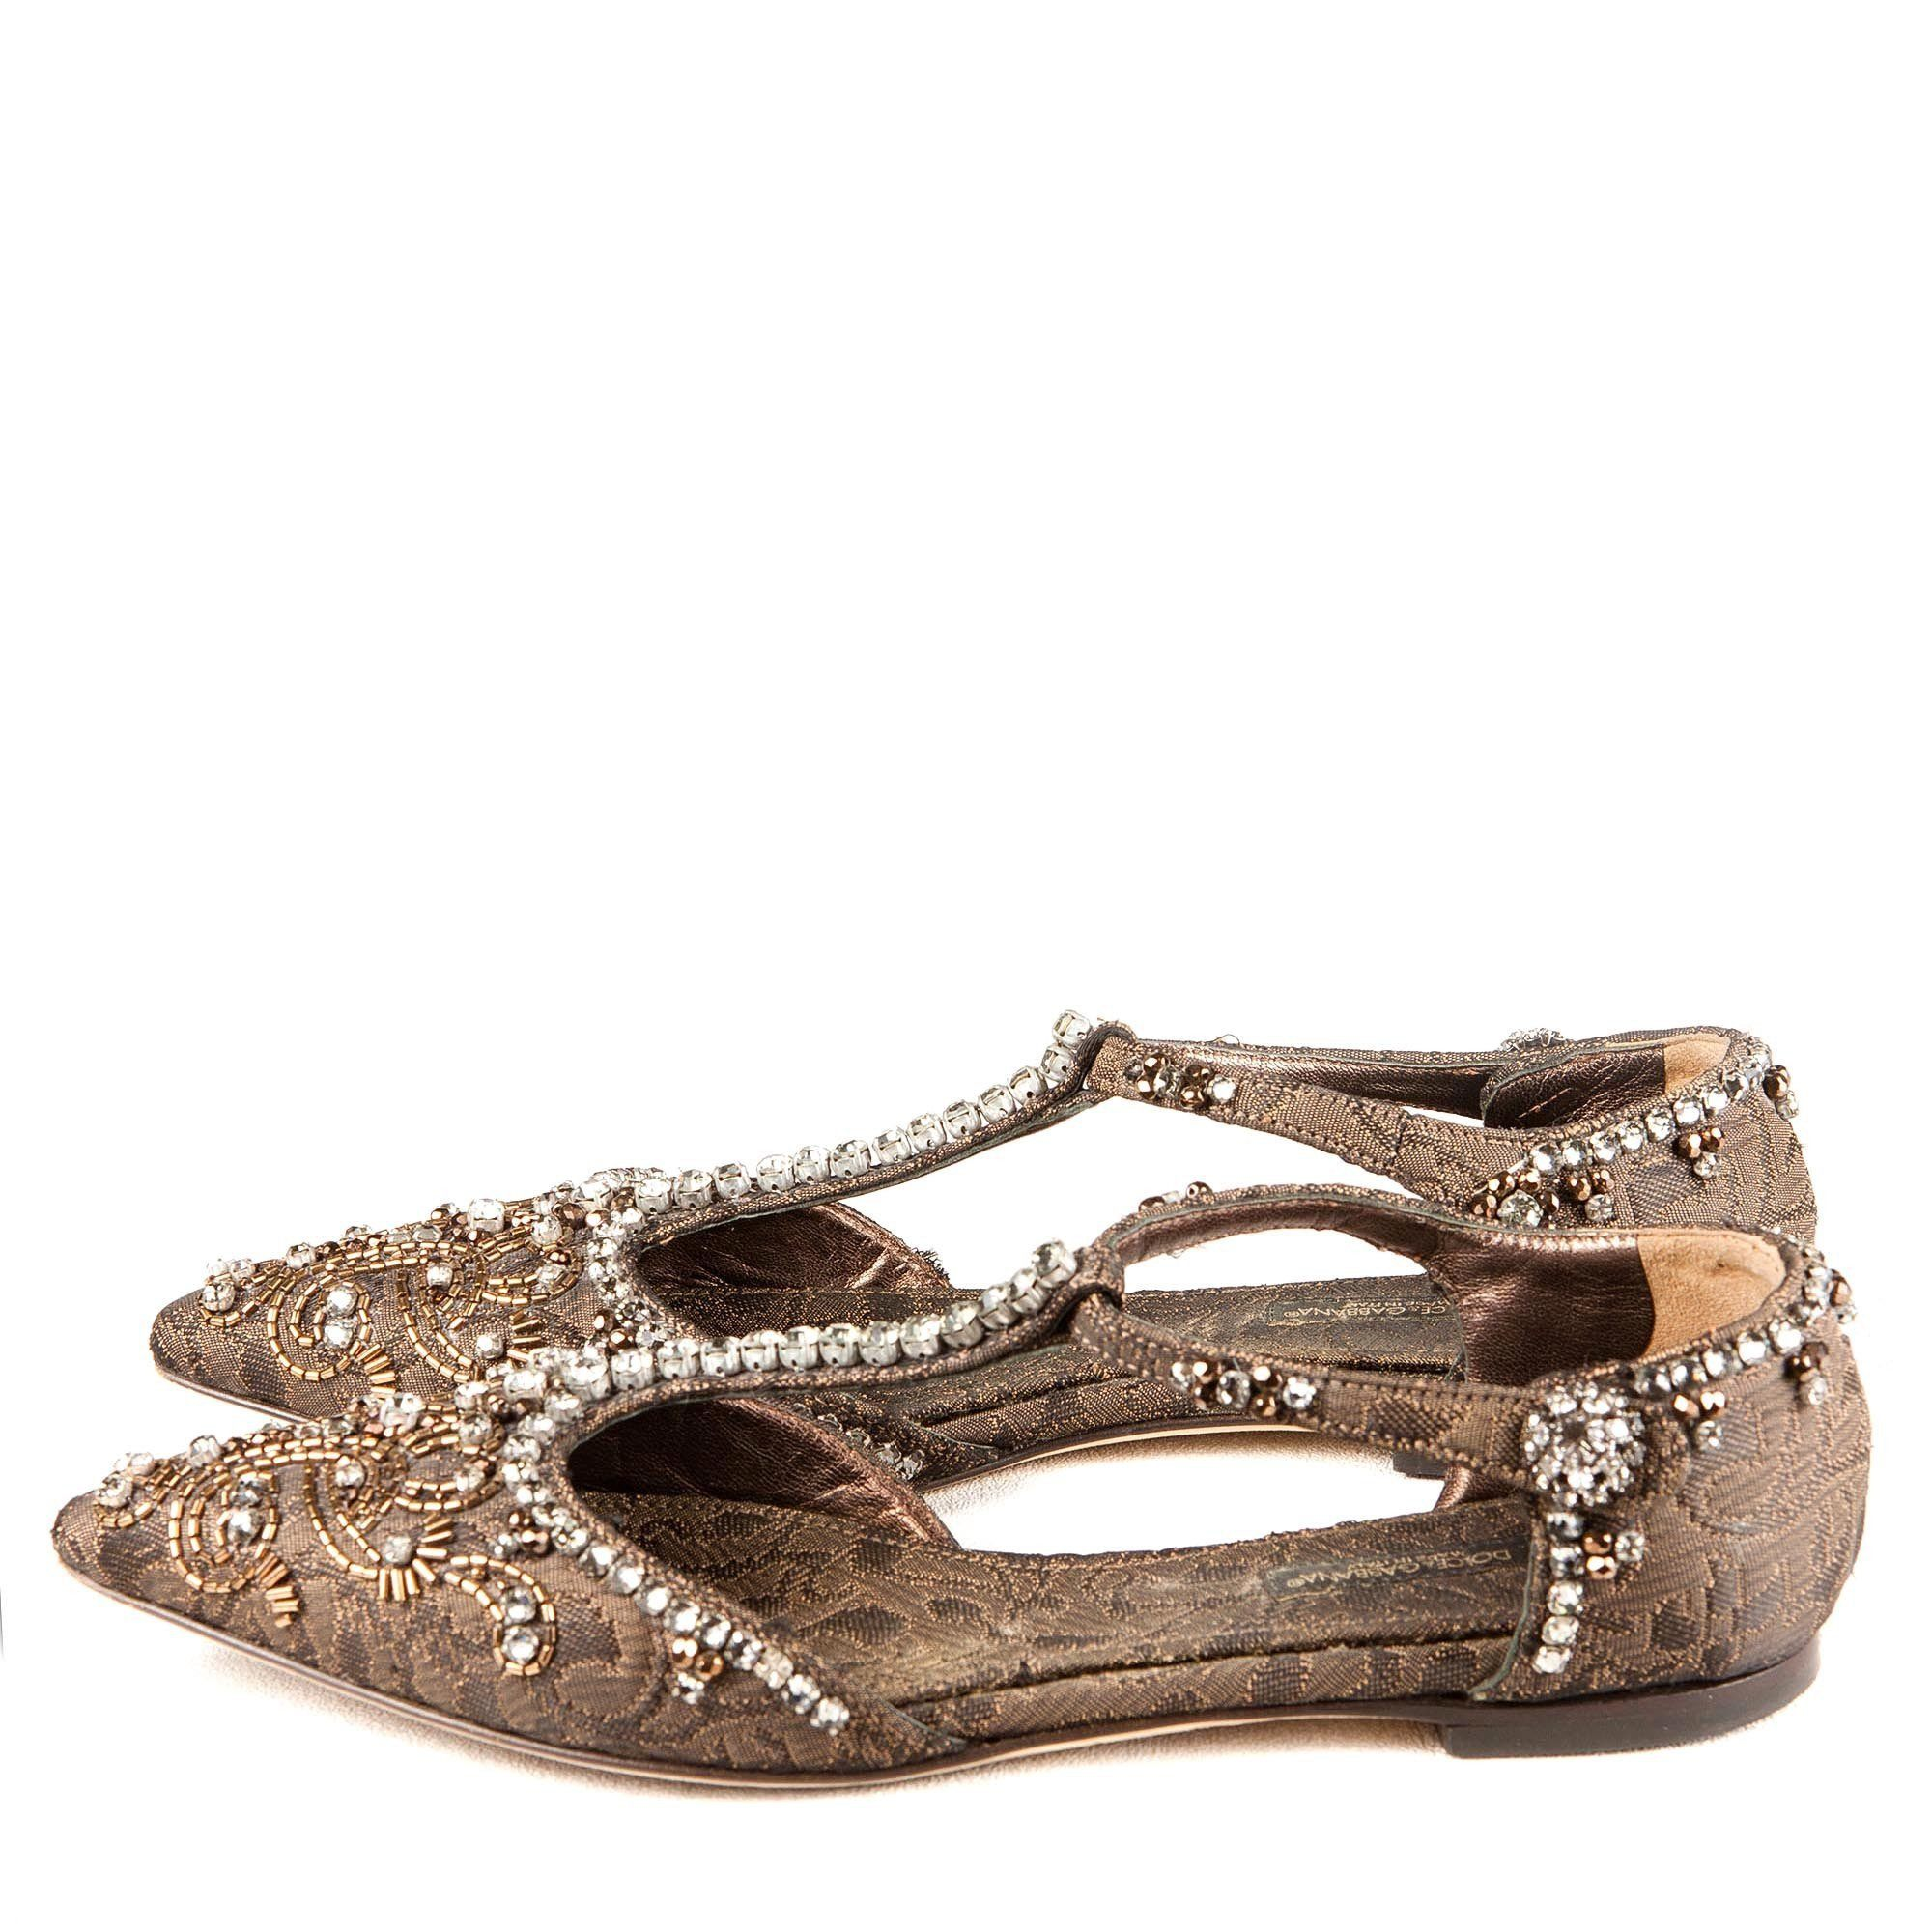 Dolce & Gabbana Embellished T-Bar Pointed Toe Flats